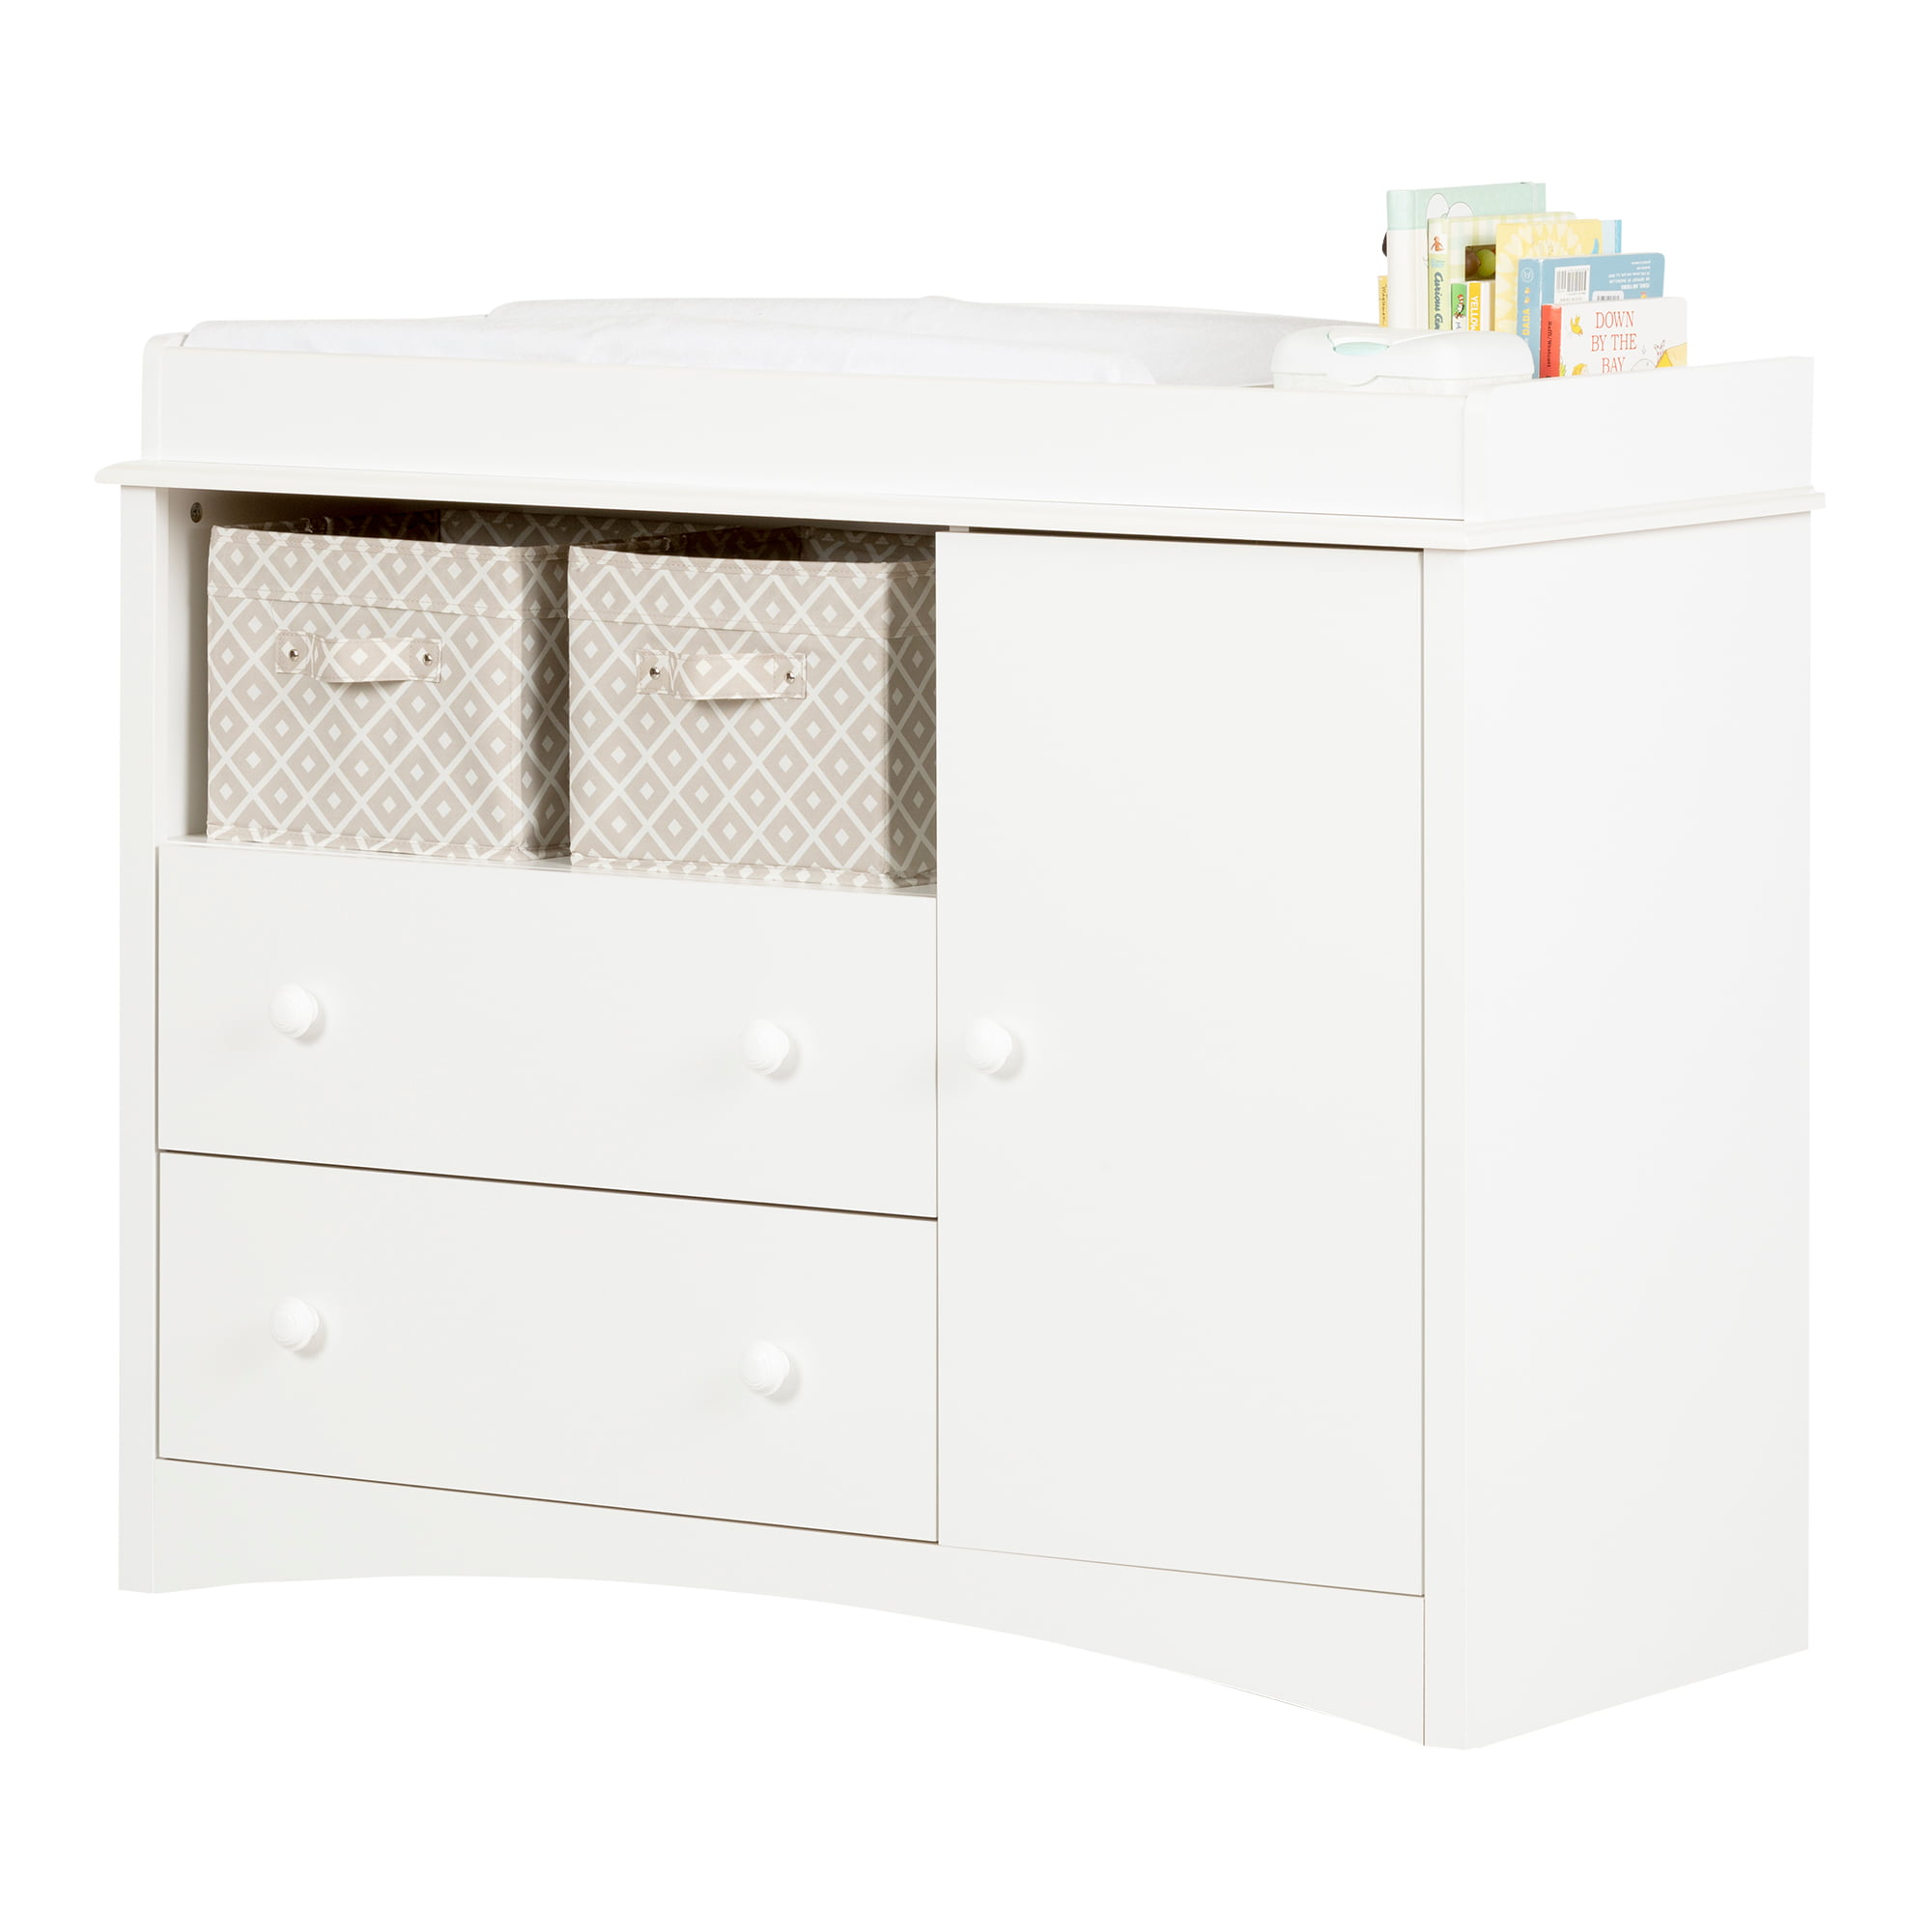 Image of: South Shore Peak A Boo Changing Table Dresser With 2 Drawers White Walmart Com Walmart Com